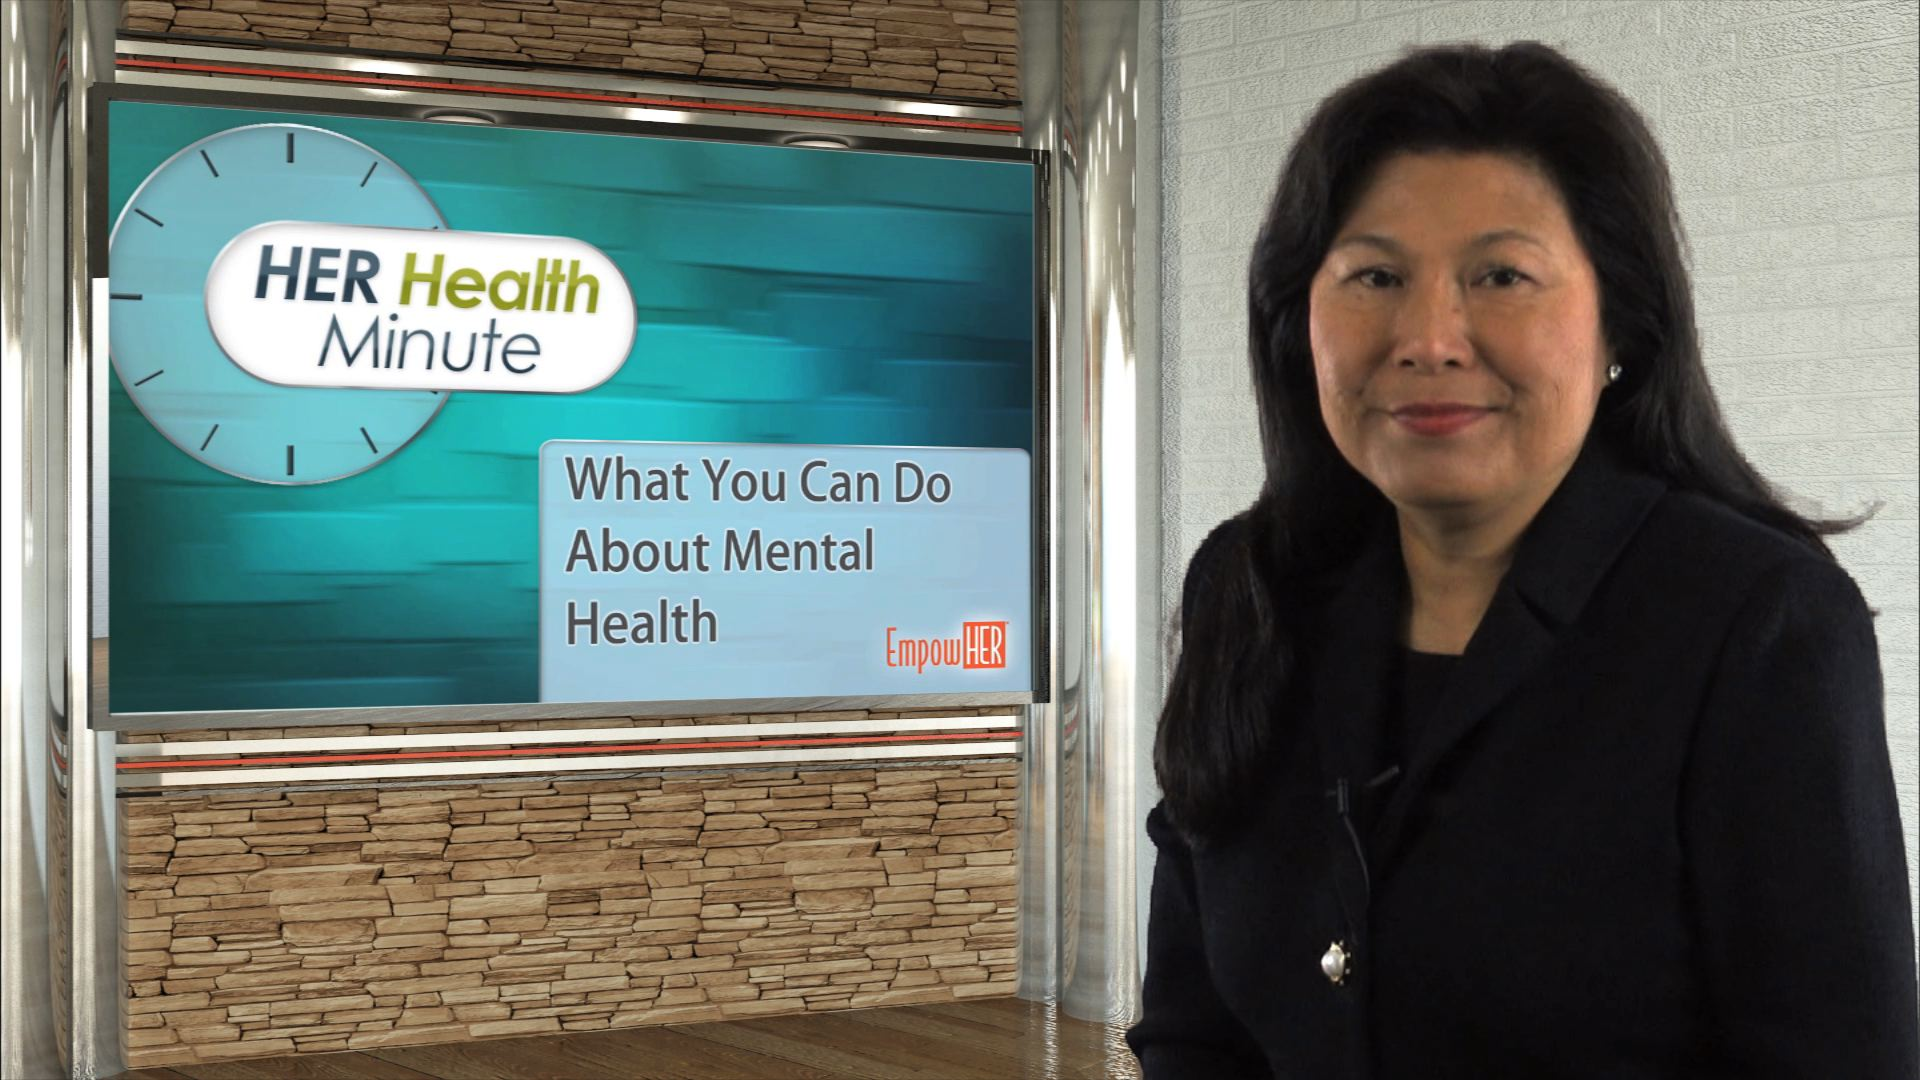 What You Can Do to Stay Mentally Healthy